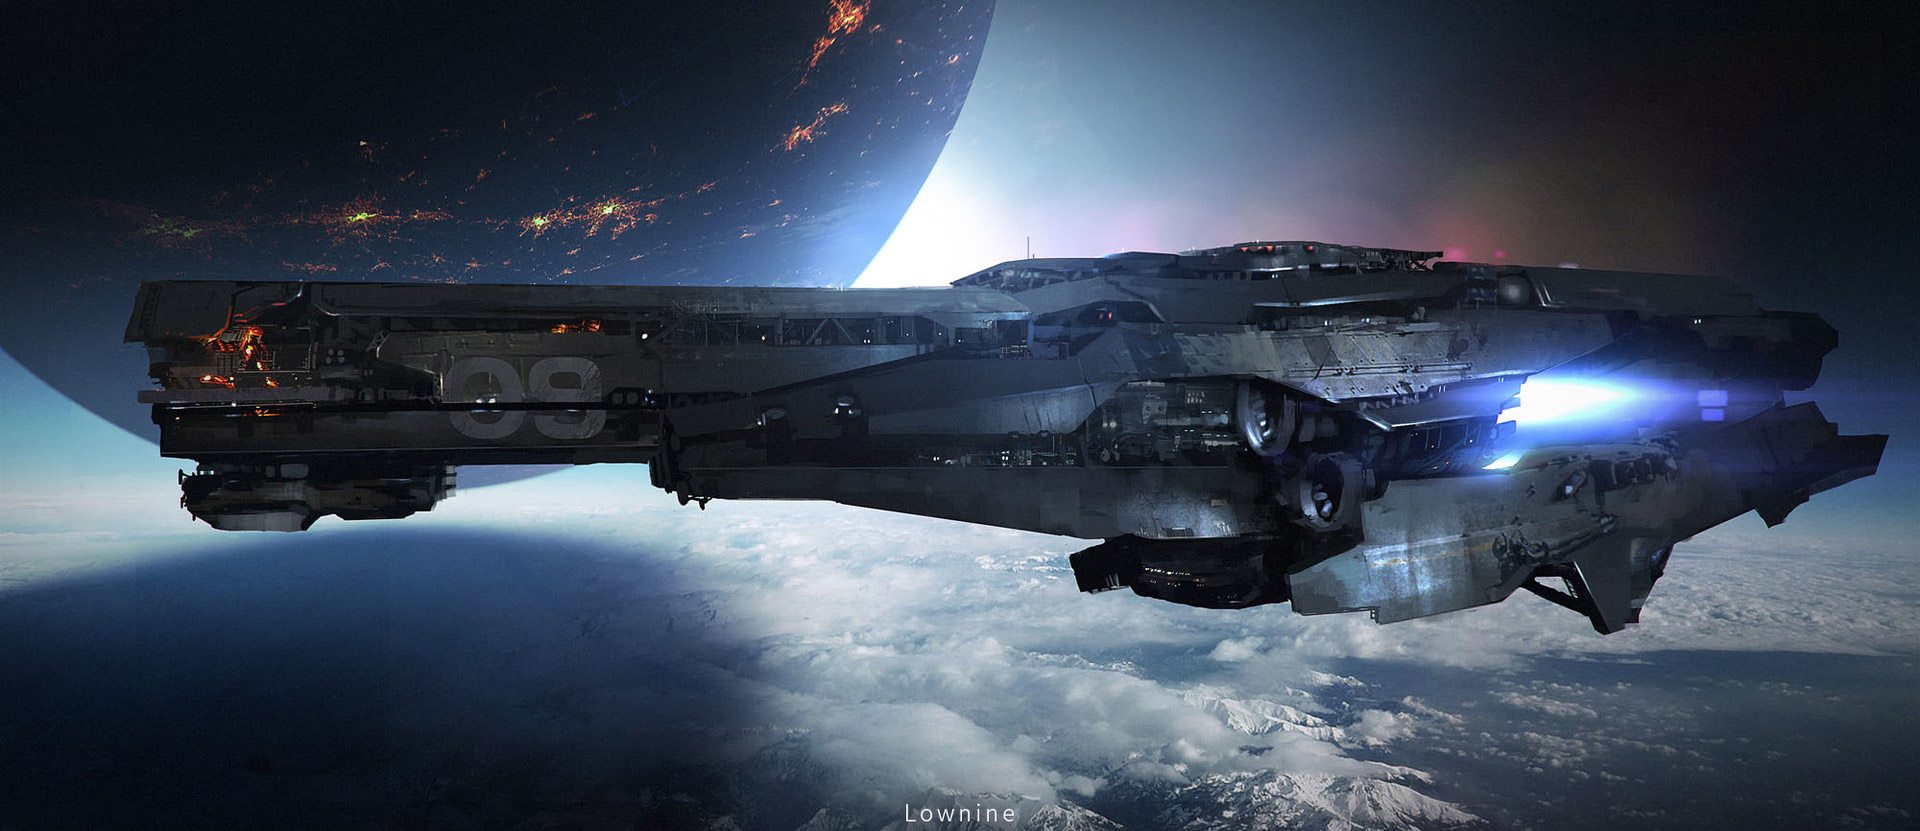 The amazing sci fi concept art of lownine digital artist - Amazing small spaces concept ...